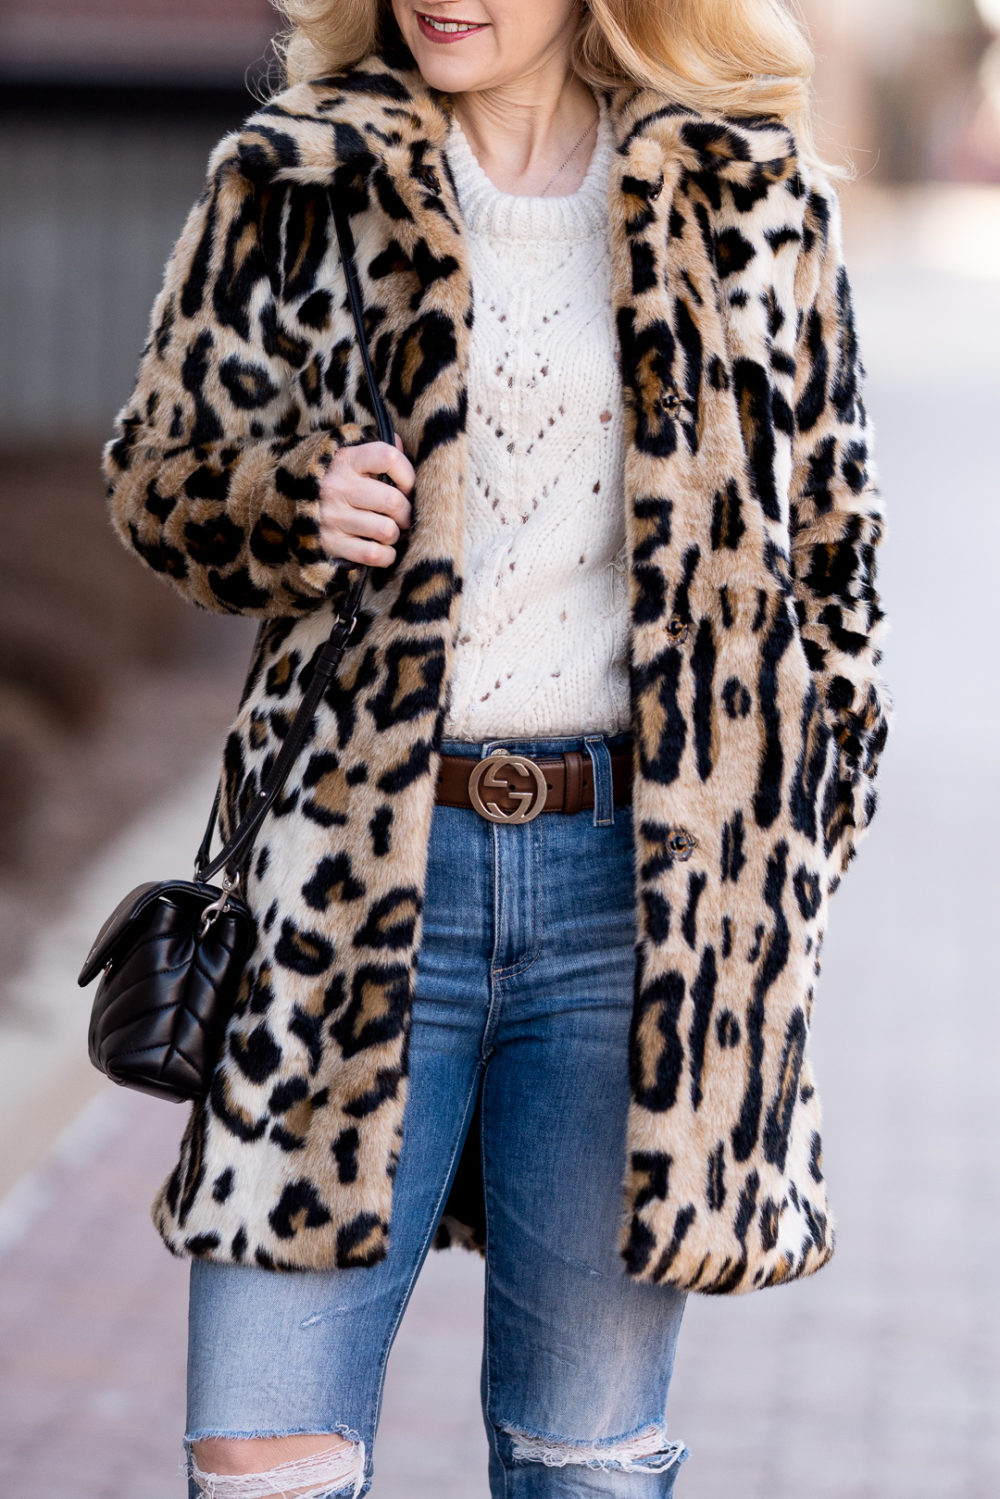 Petite Fashion Blog | Petite Style | Kensie Leopard Coat | Topshop Pointelle Sweater | Gucci Belt | AG Isabella Crop Jeans | YSL Lou Lou Toy Crossbody Bag